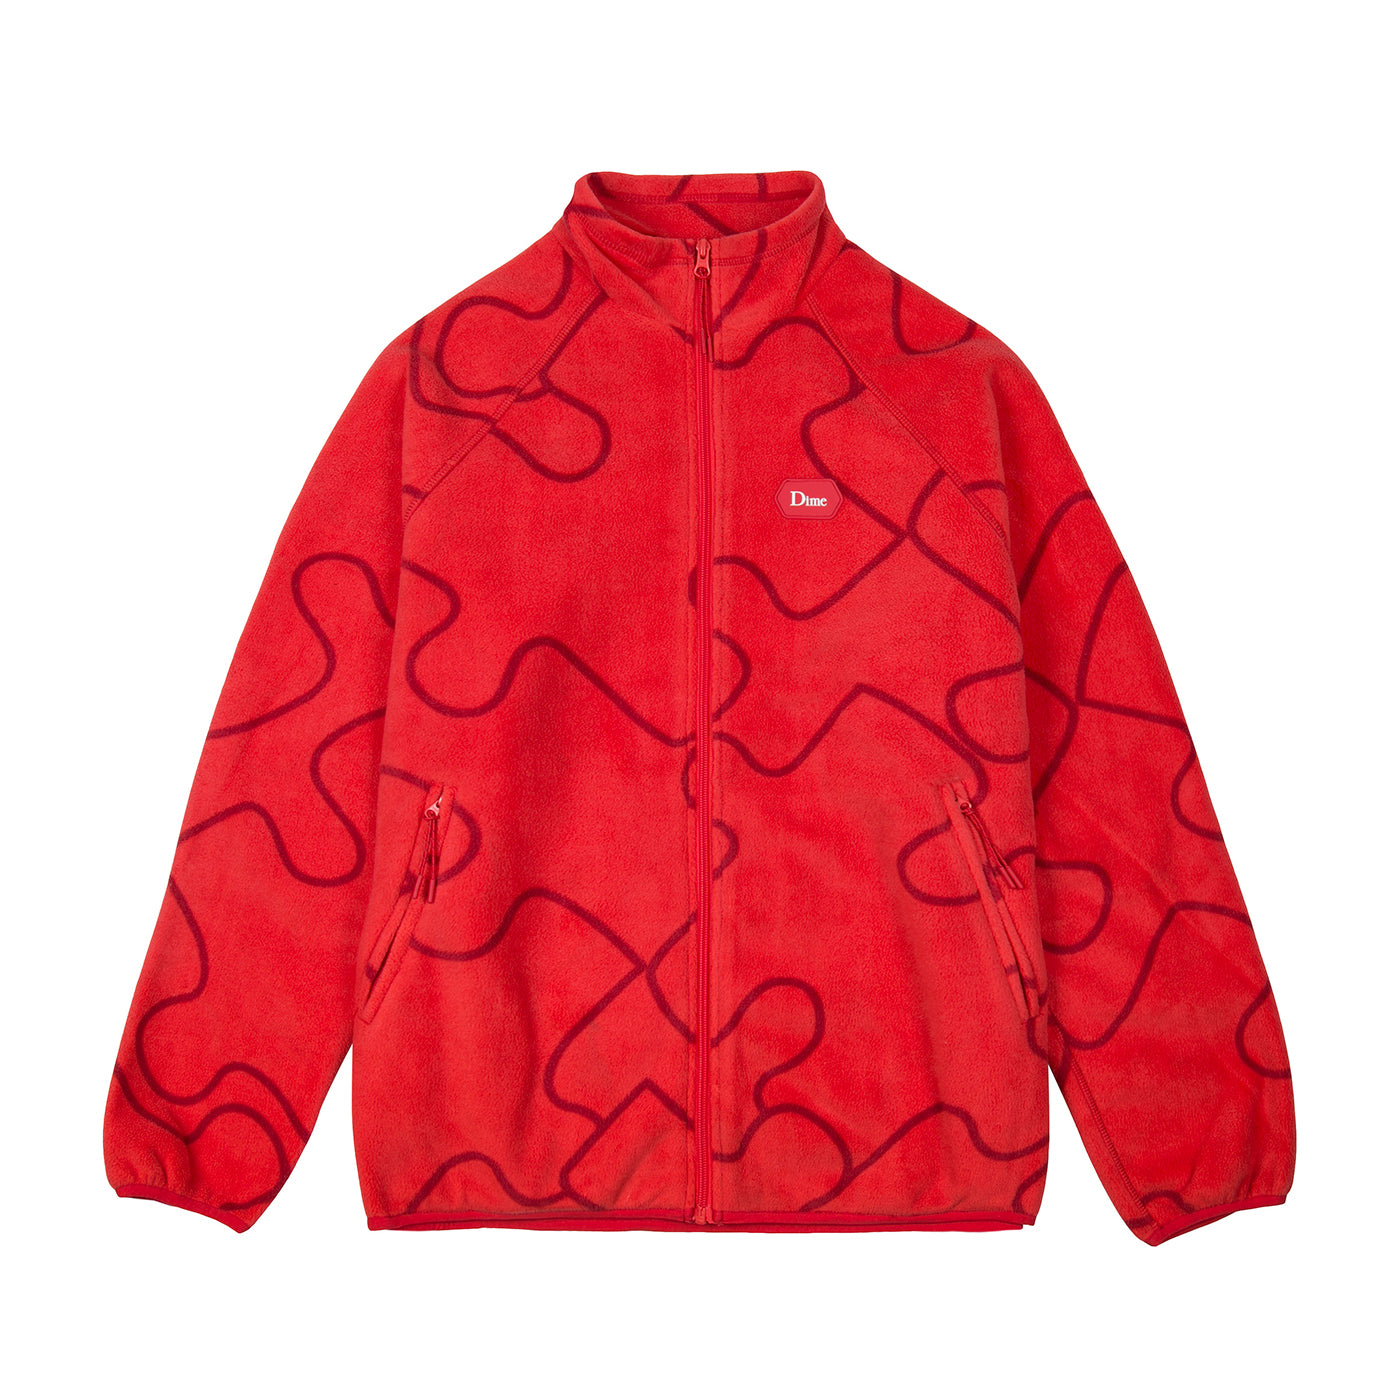 Dime Puzzle Polar Fleece Product Photo #1